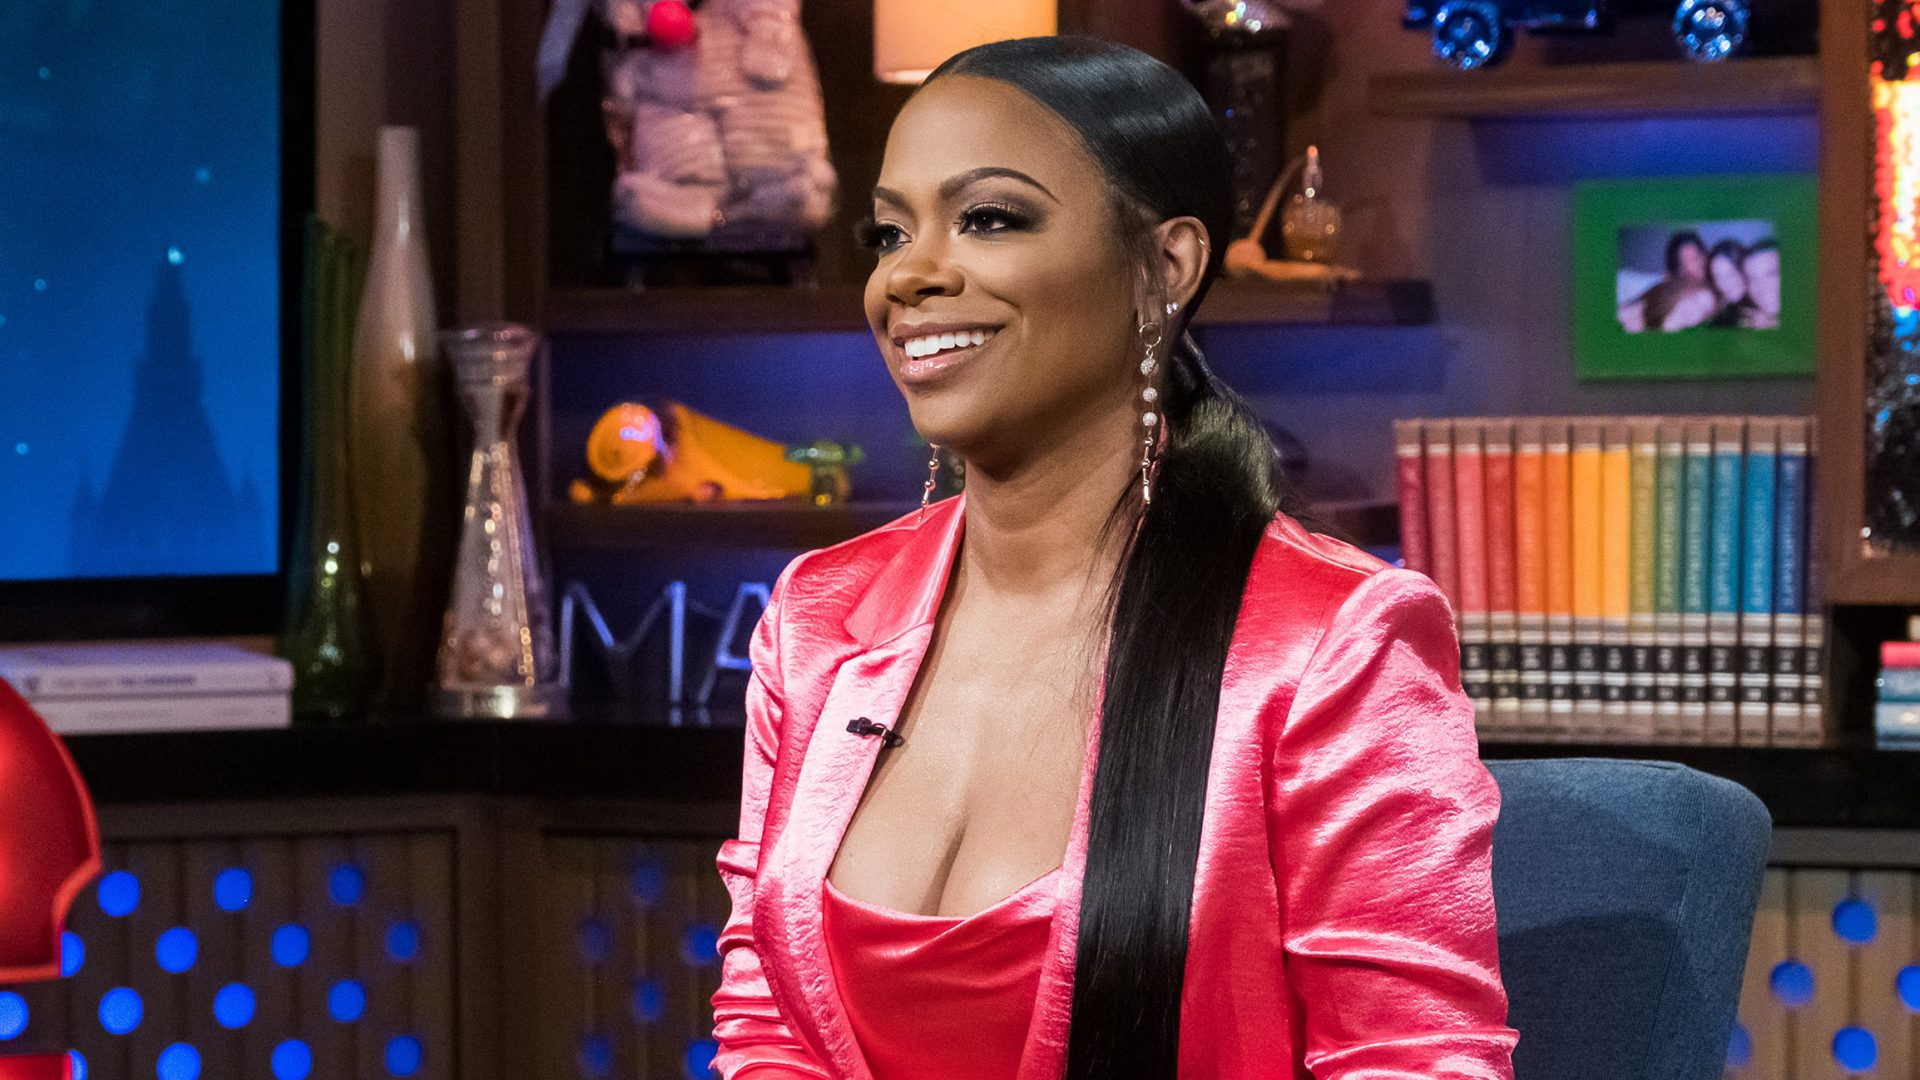 Kandi Burruss Offers Her Gratitude To Dr. Martin Luther King Jr. For Everything He Did To Change The World